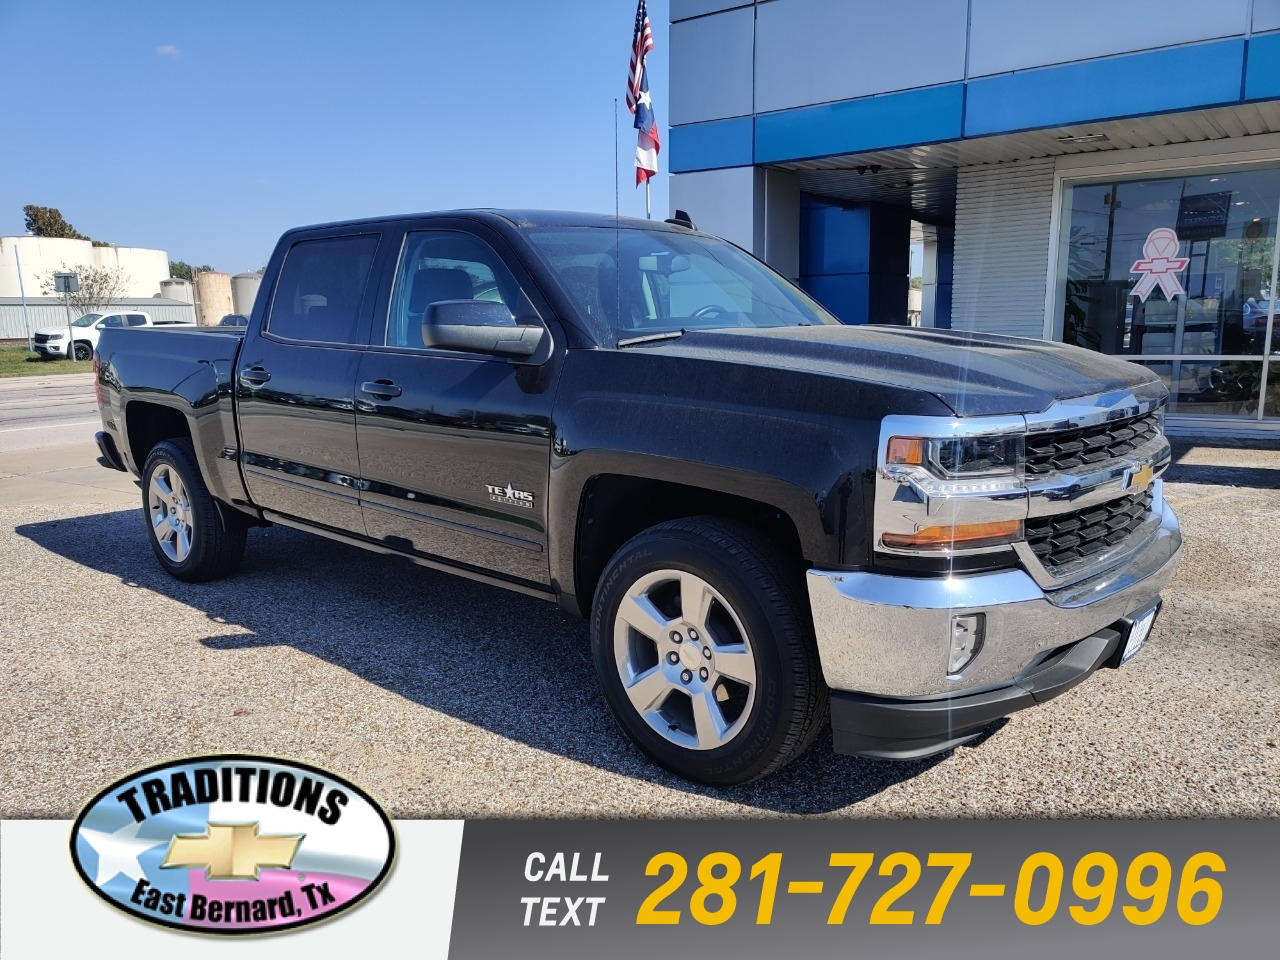 2018 Chevrolet Silverado 1500 Crew Cab Short Box 2-Wheel Dri photo